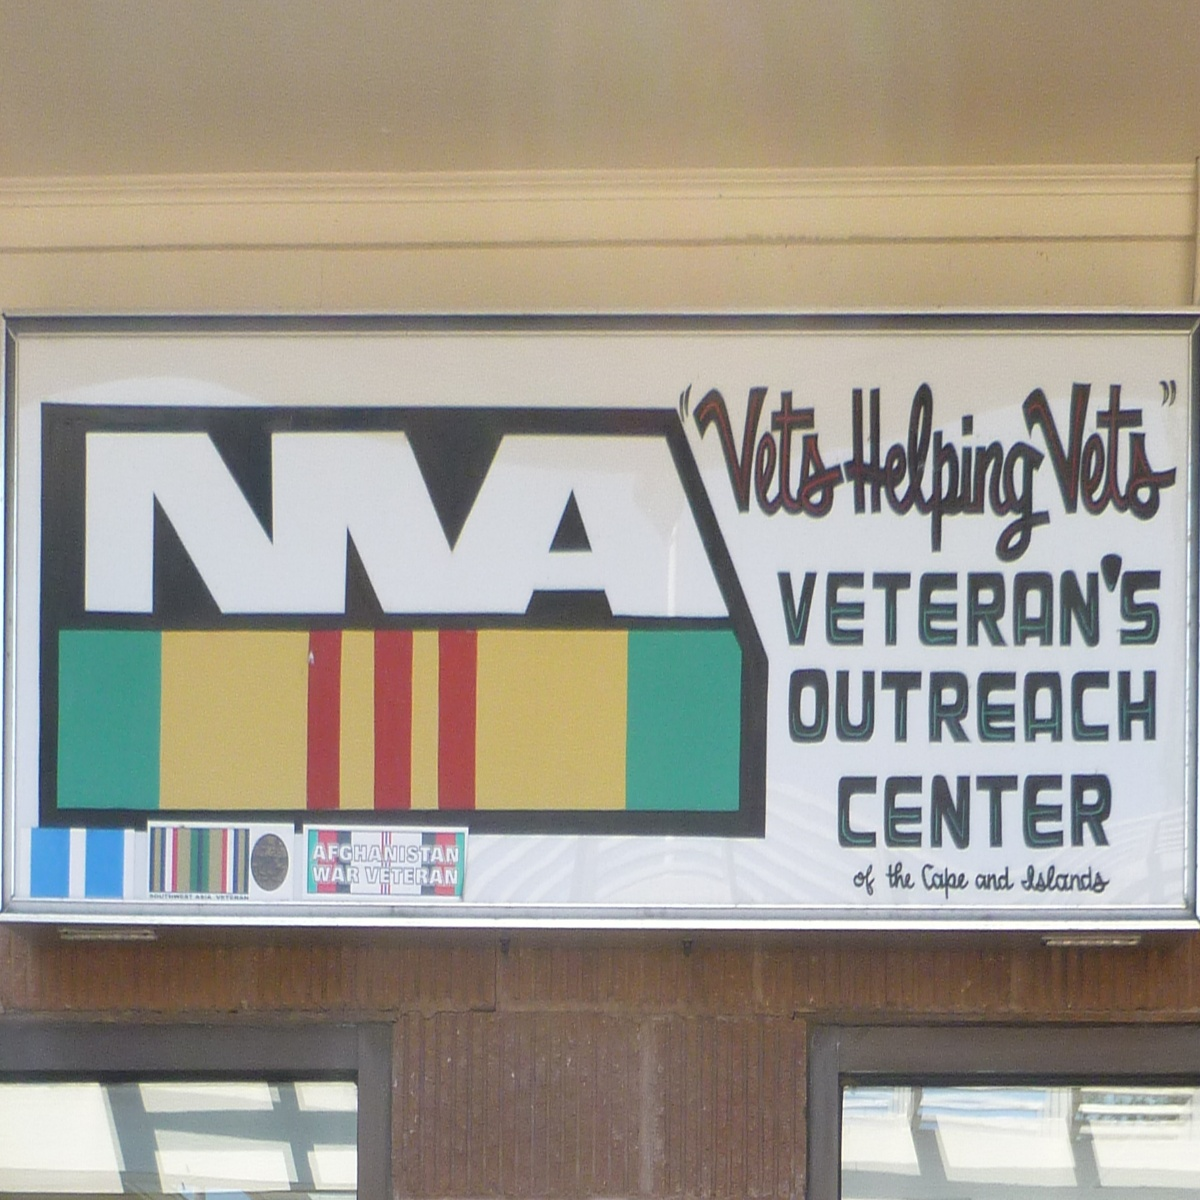 Cape & Islands Veterans Outreach Center